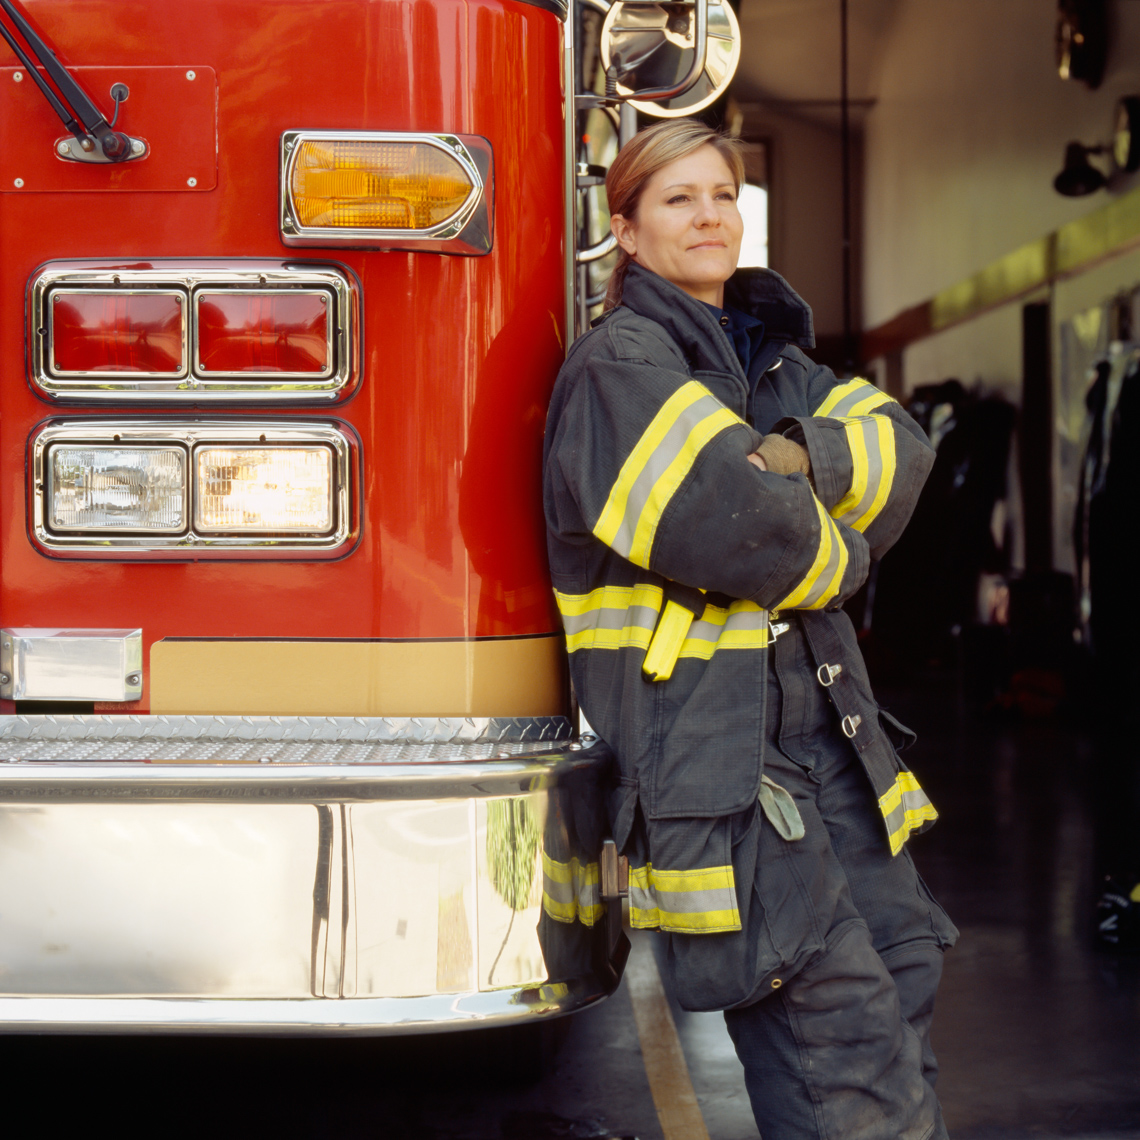 Smiling female woman firefighter wearing technical clothing bunker gear with fire engine truck at station. Confident, proud public service career professional.